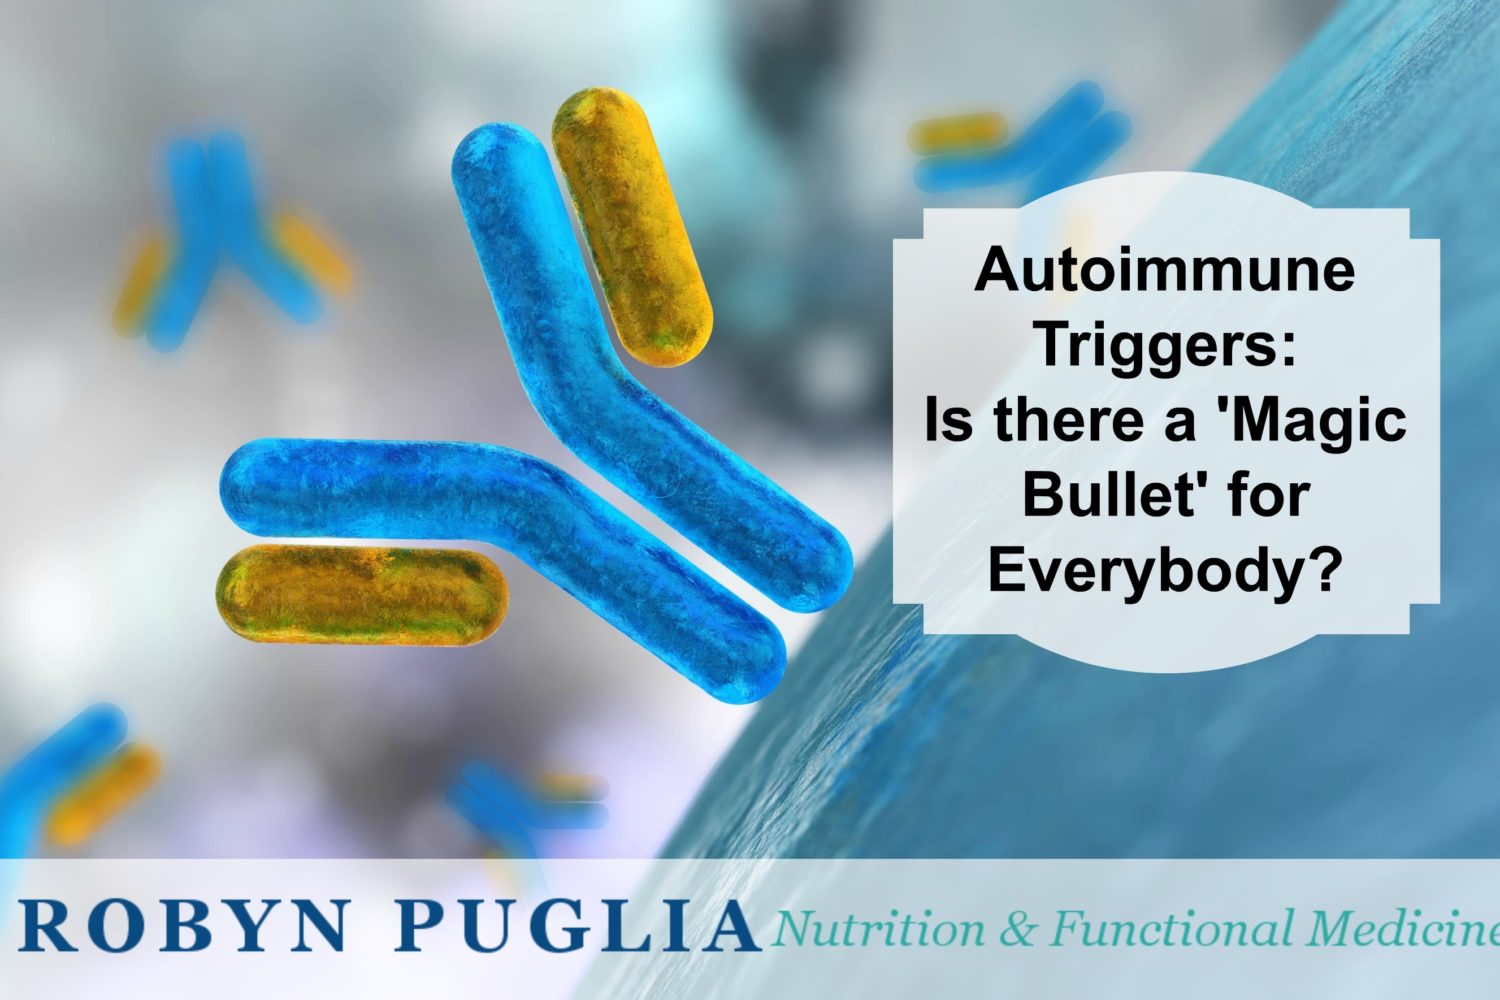 Autoimmune Triggers: Is There a Magic Bullet for Everybody?